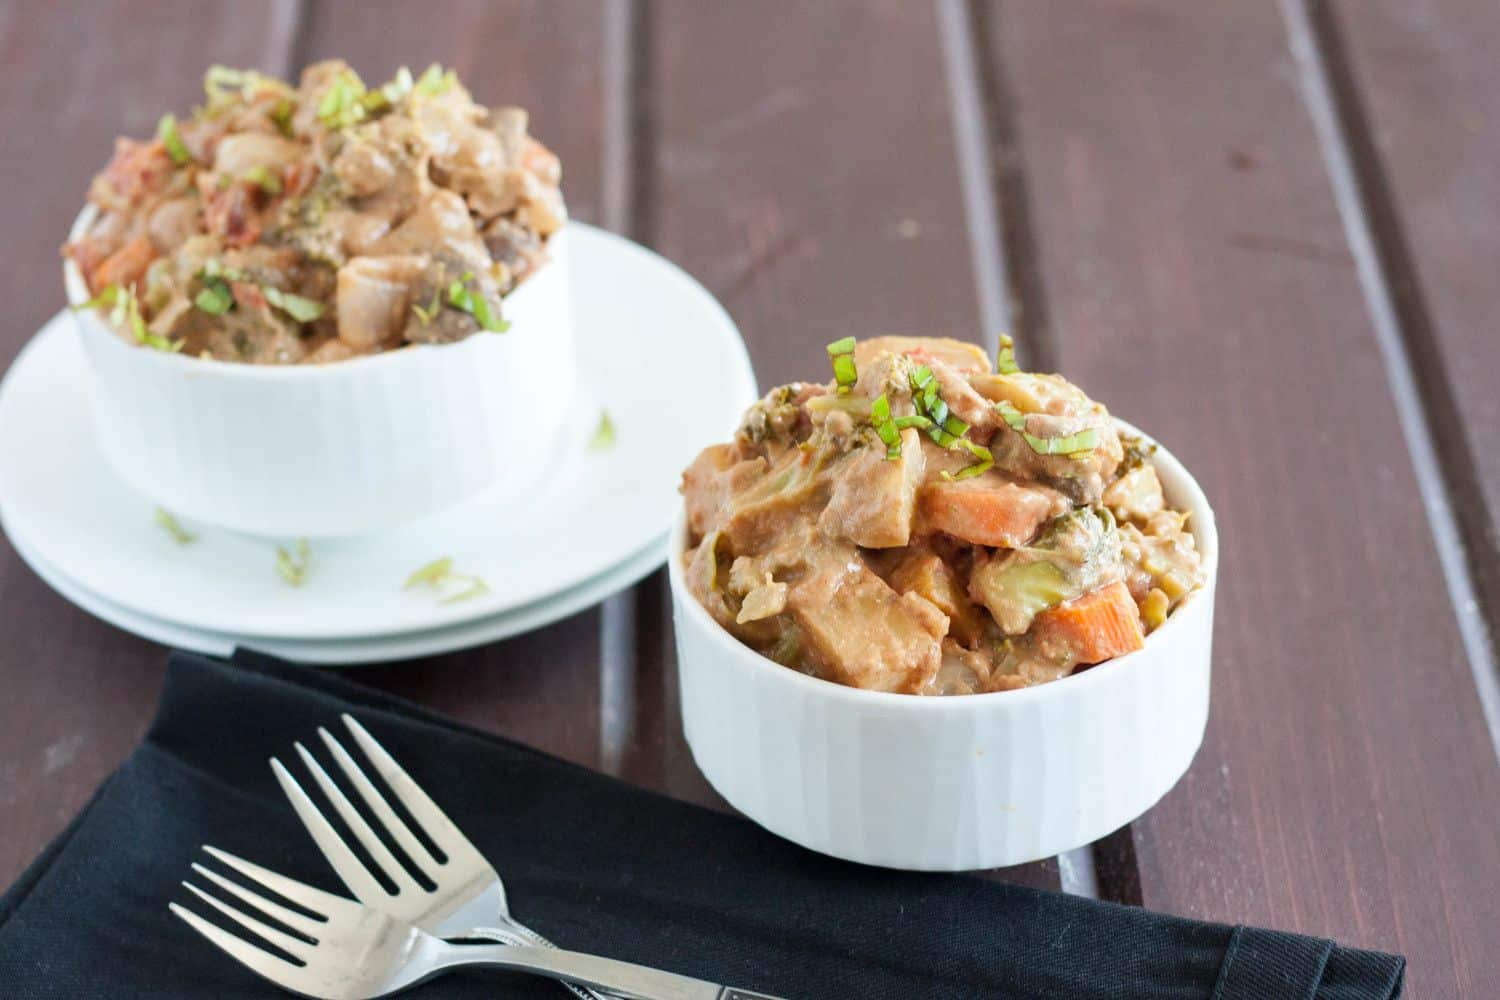 Vegan Thai Bake - This easy recipe is packed with protein thanks to nut butters and dairy-free milks, and has an amazing flavor profile thanks to Thai curry paste. Use your favorite seasonal vegetables, and it's easy and cheap comfort food for a crowd.